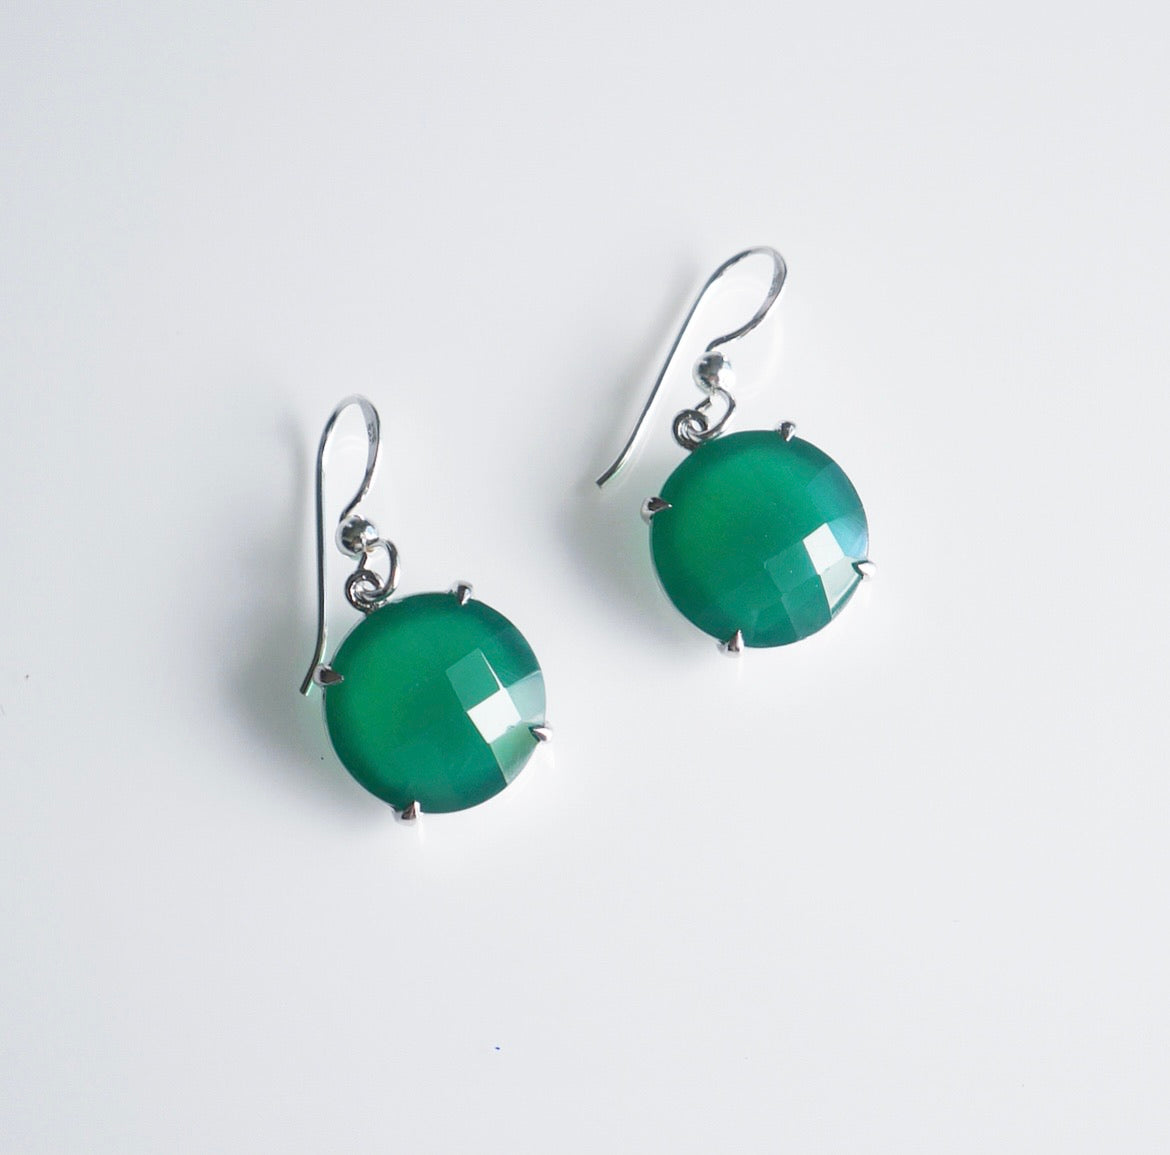 Green Onyx Gemstone Day Earrings